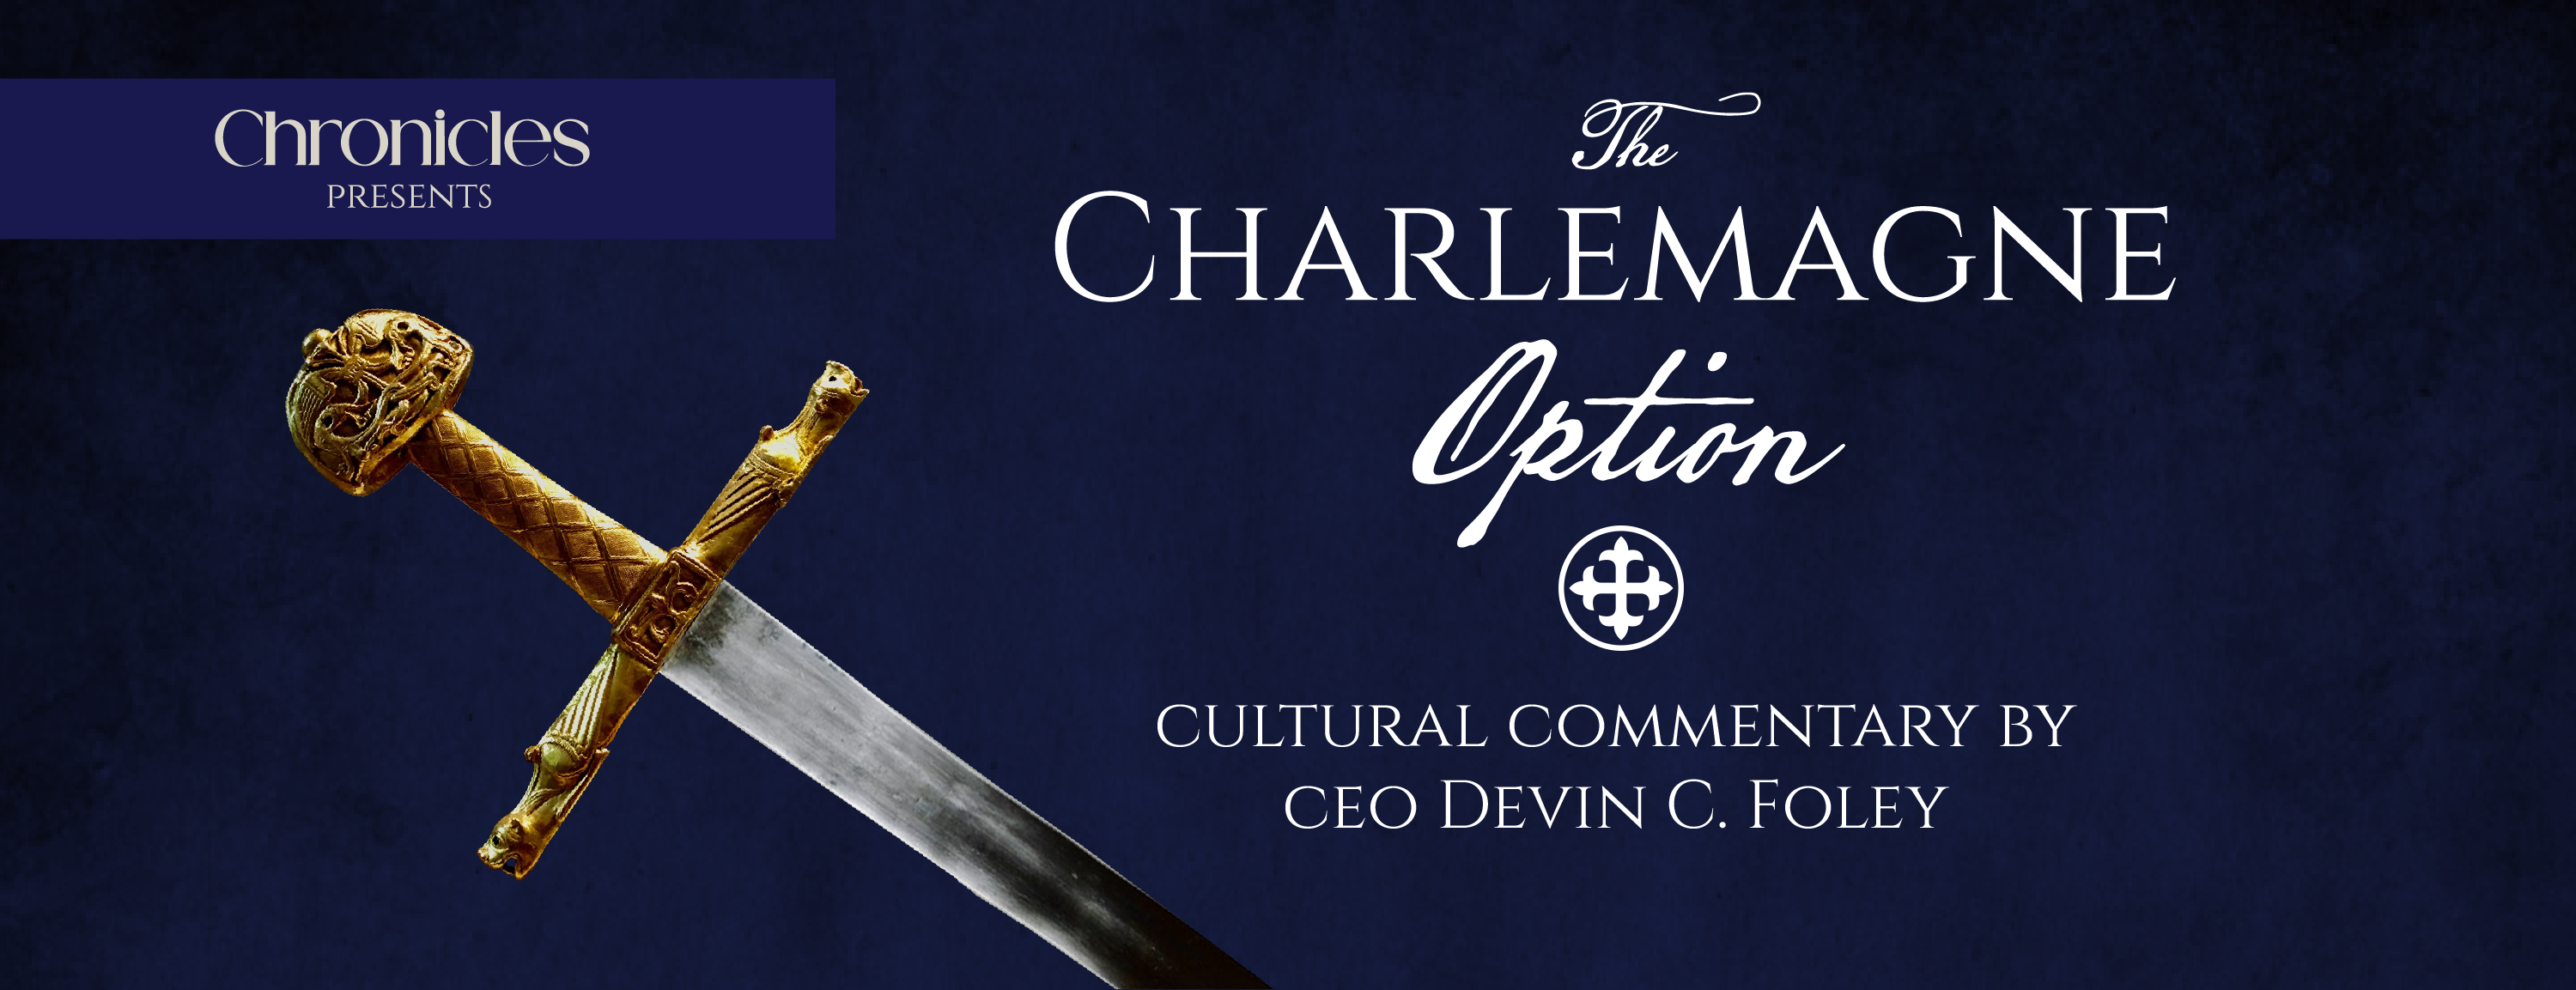 The Charlemagne Option by Devin C. Foley